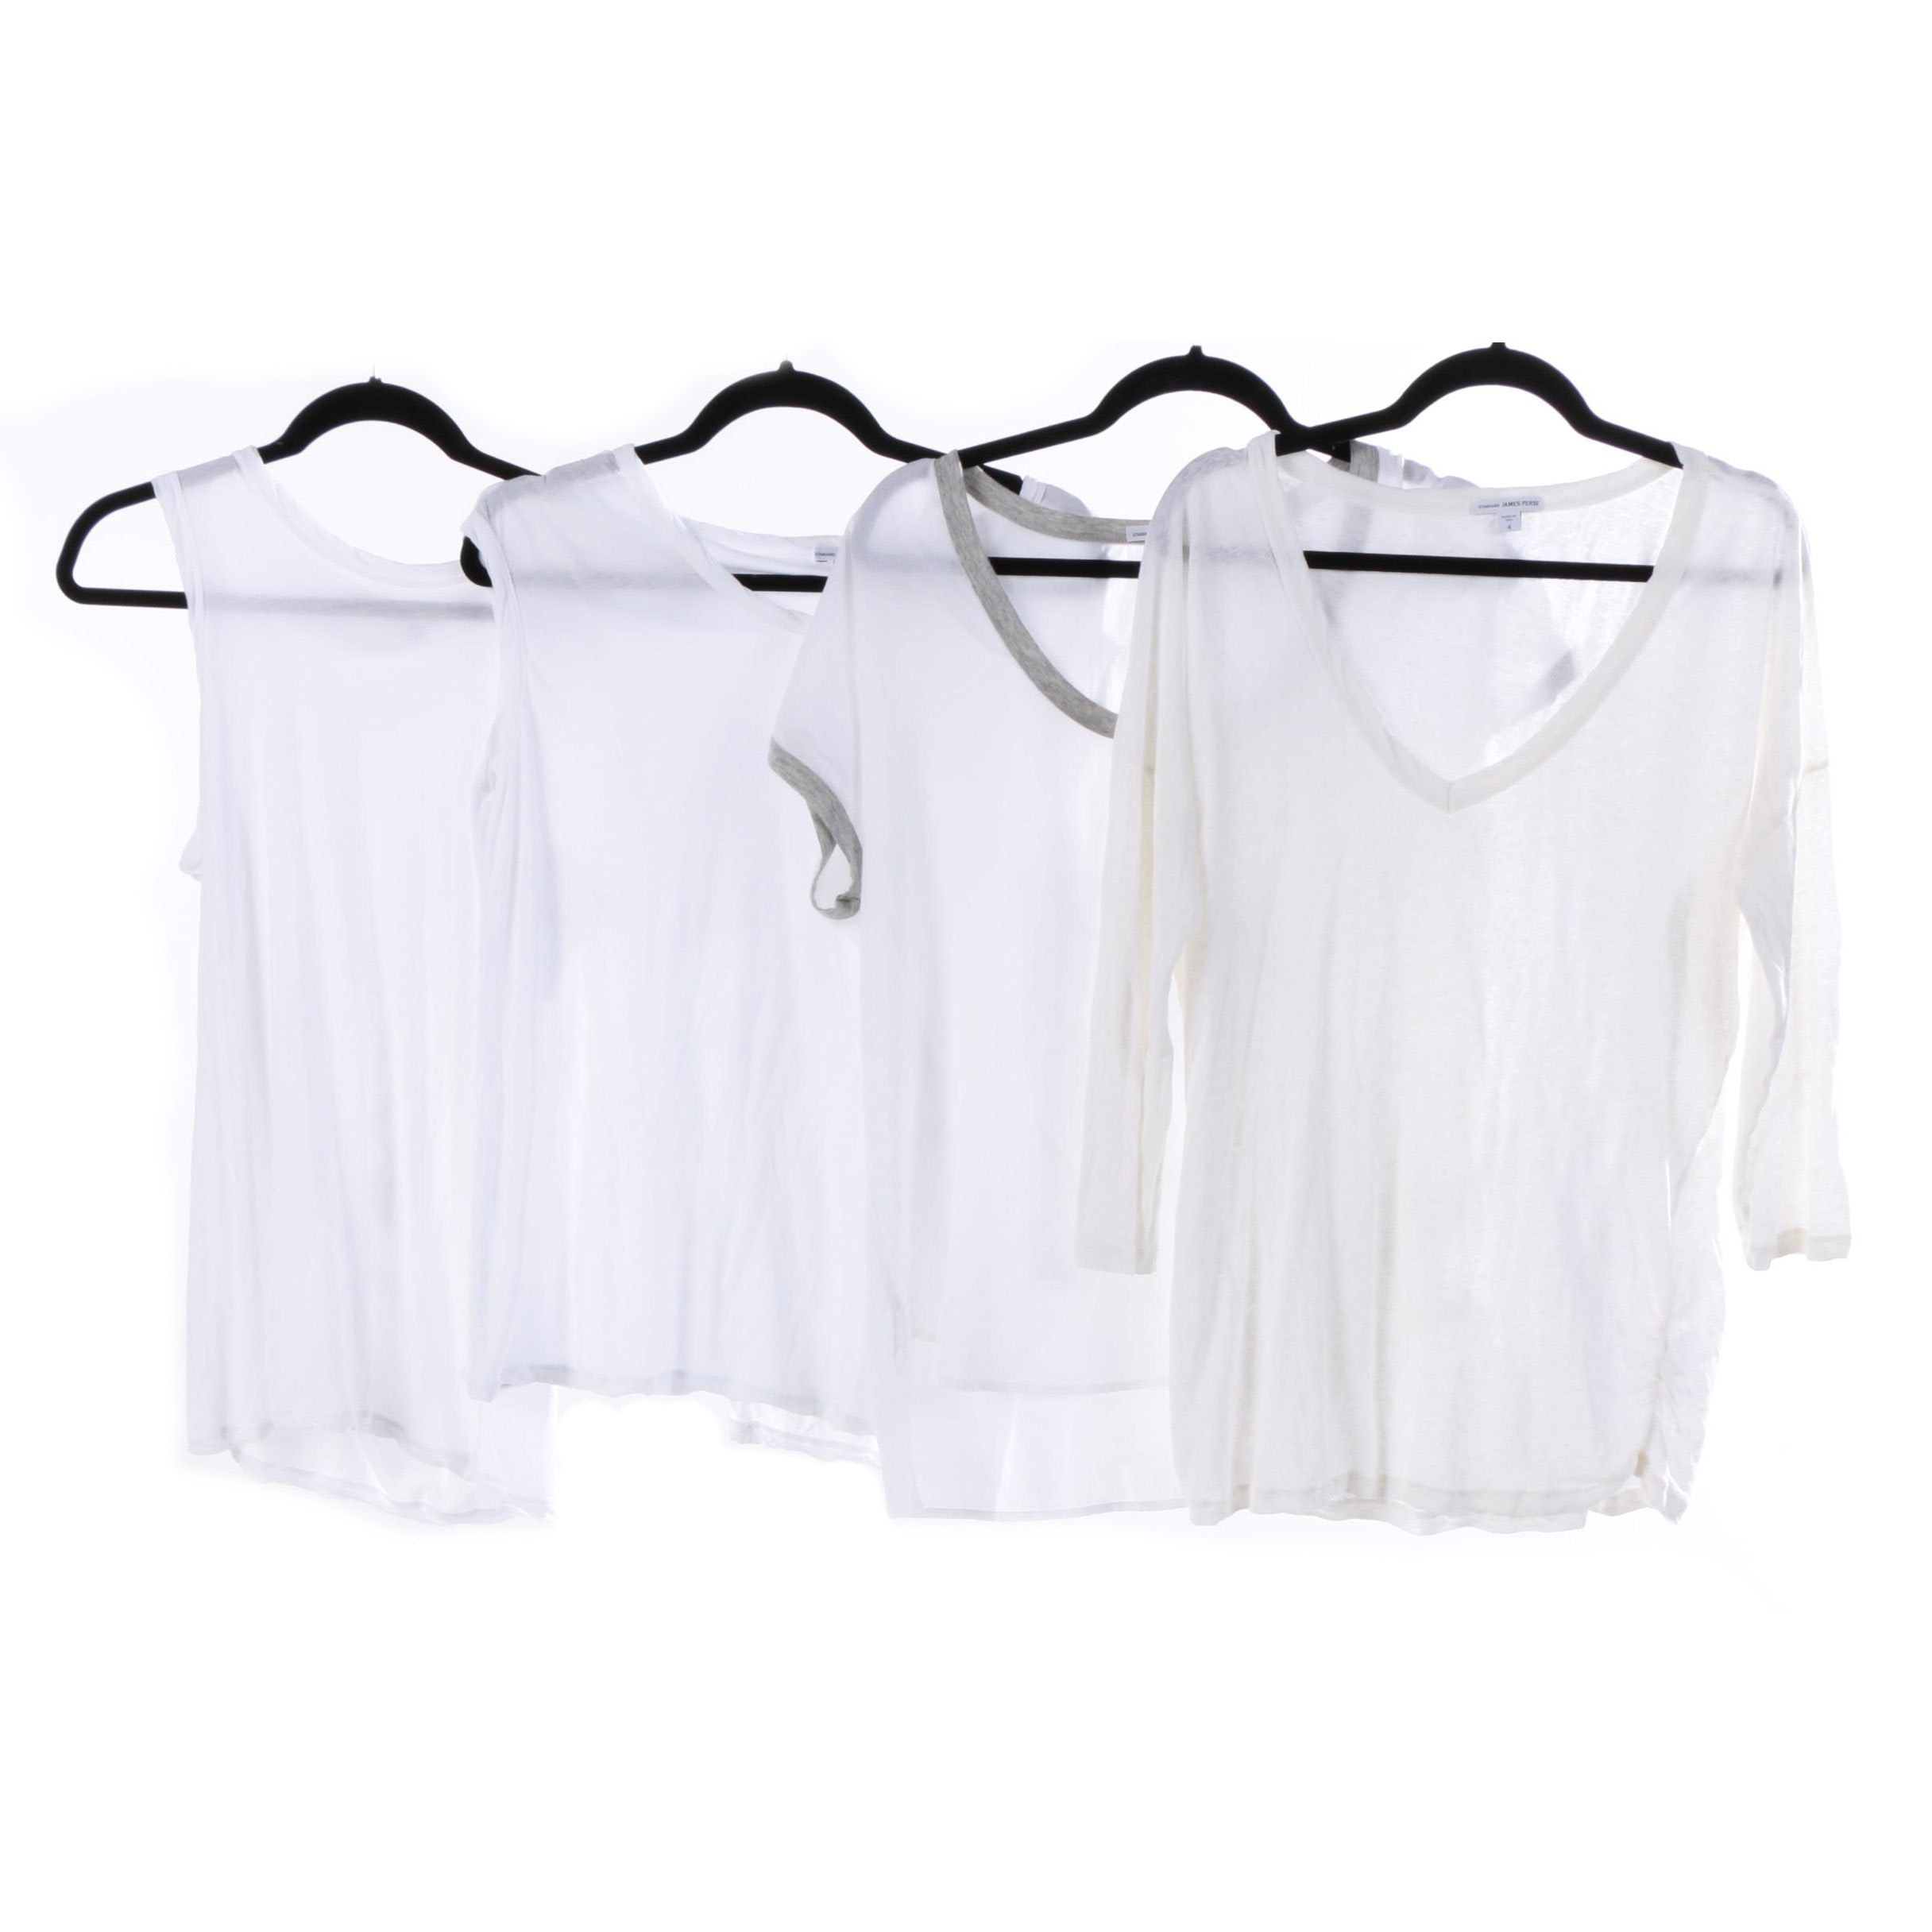 Women's Standard James Perse Off-White T-Shirts and Tank Tops